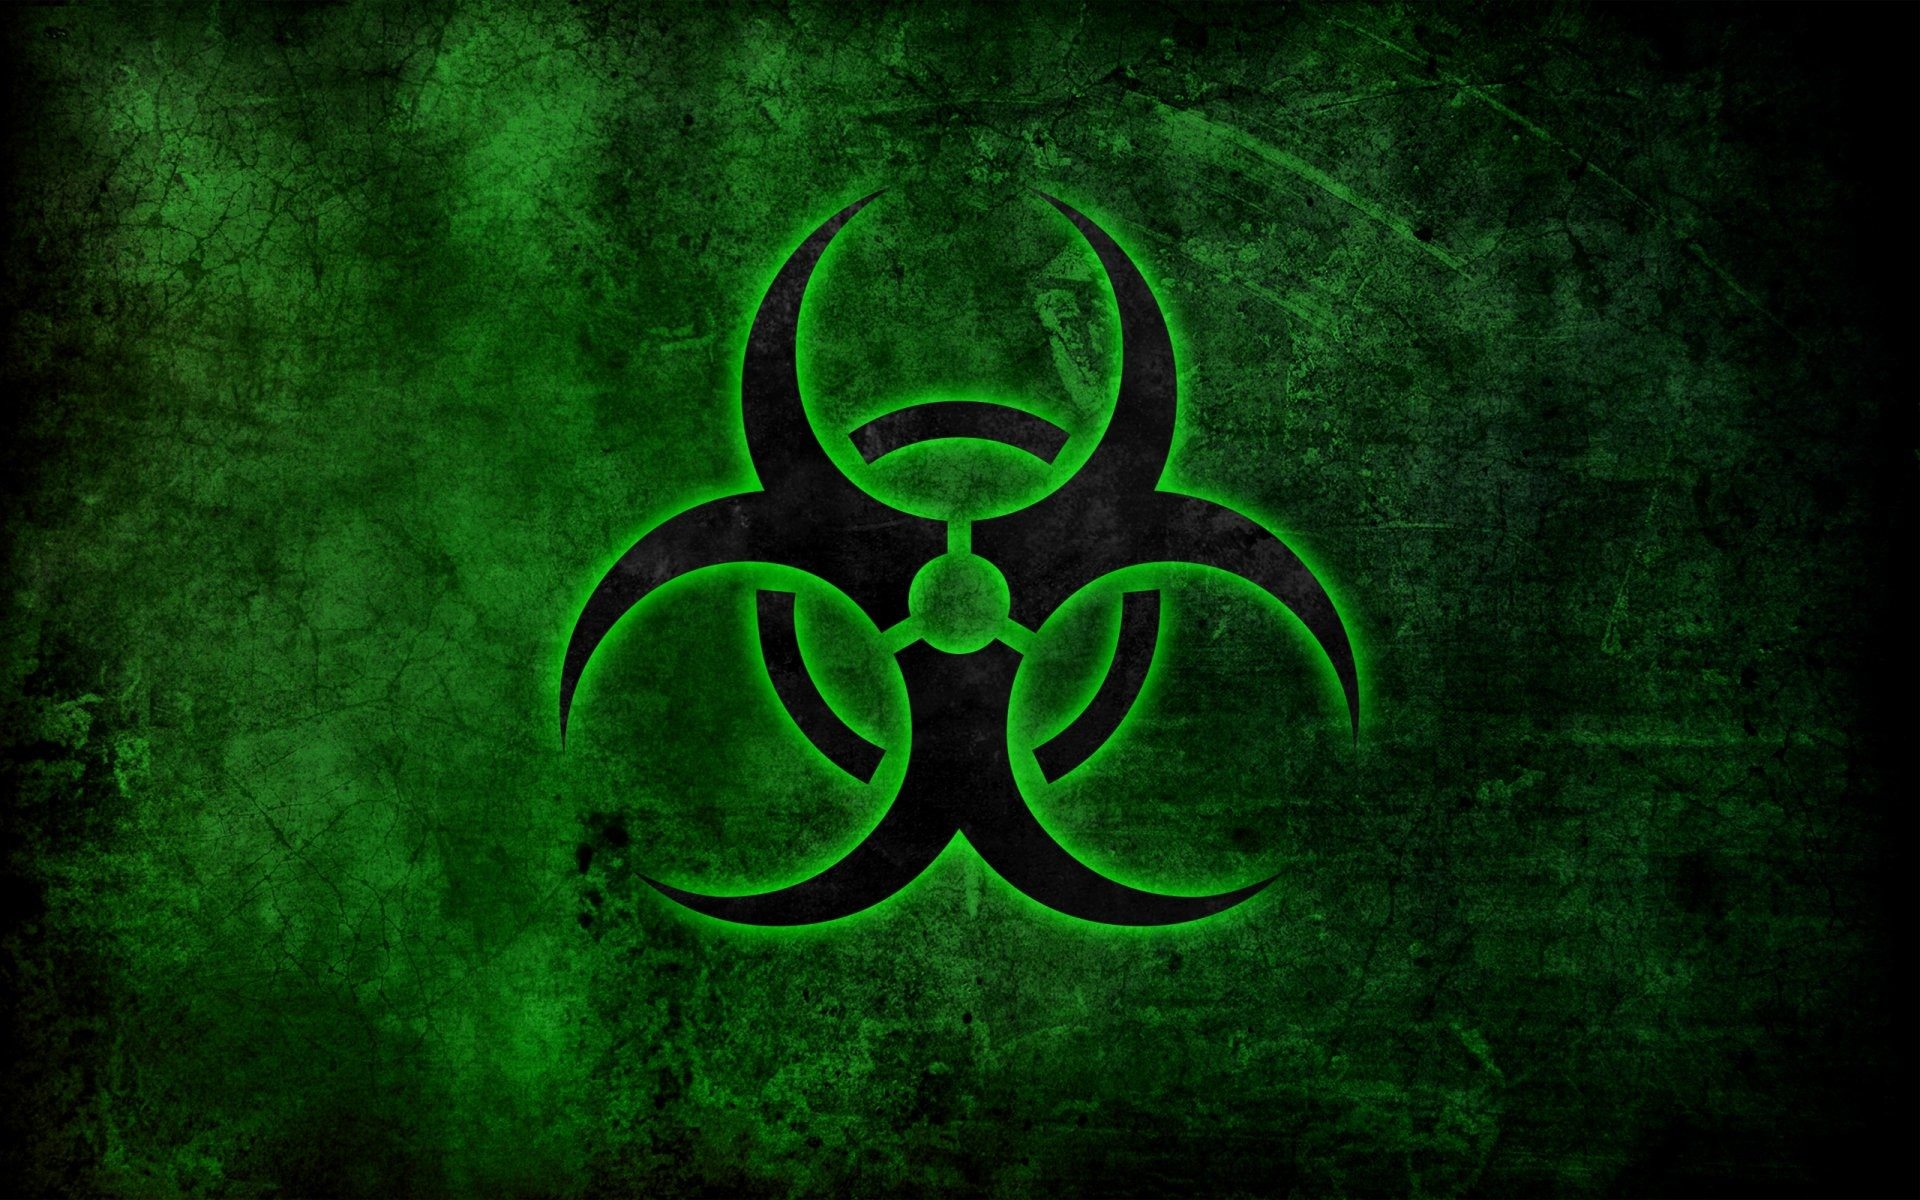 Biohazard Symbol Wallpapers 56 Background Pictures